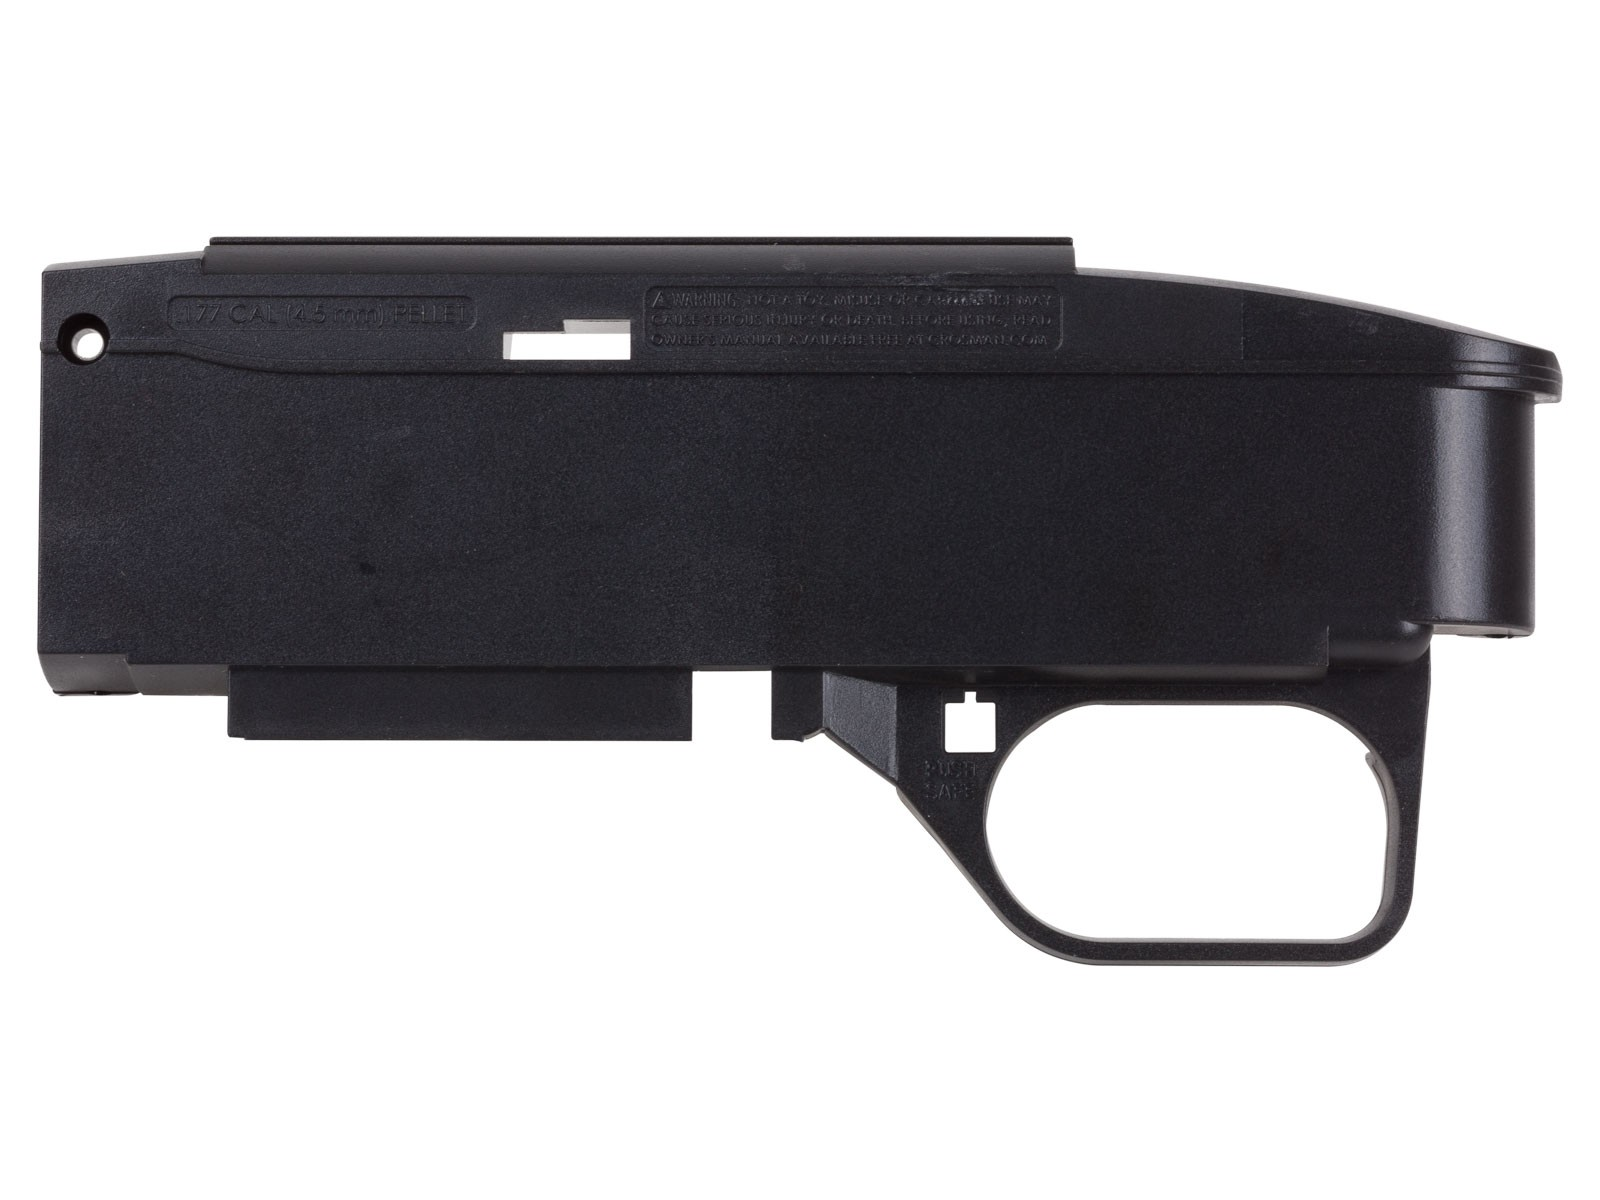 Crosman 1077 Air Rifle Receiver Left Hand Side with Trigger Guard